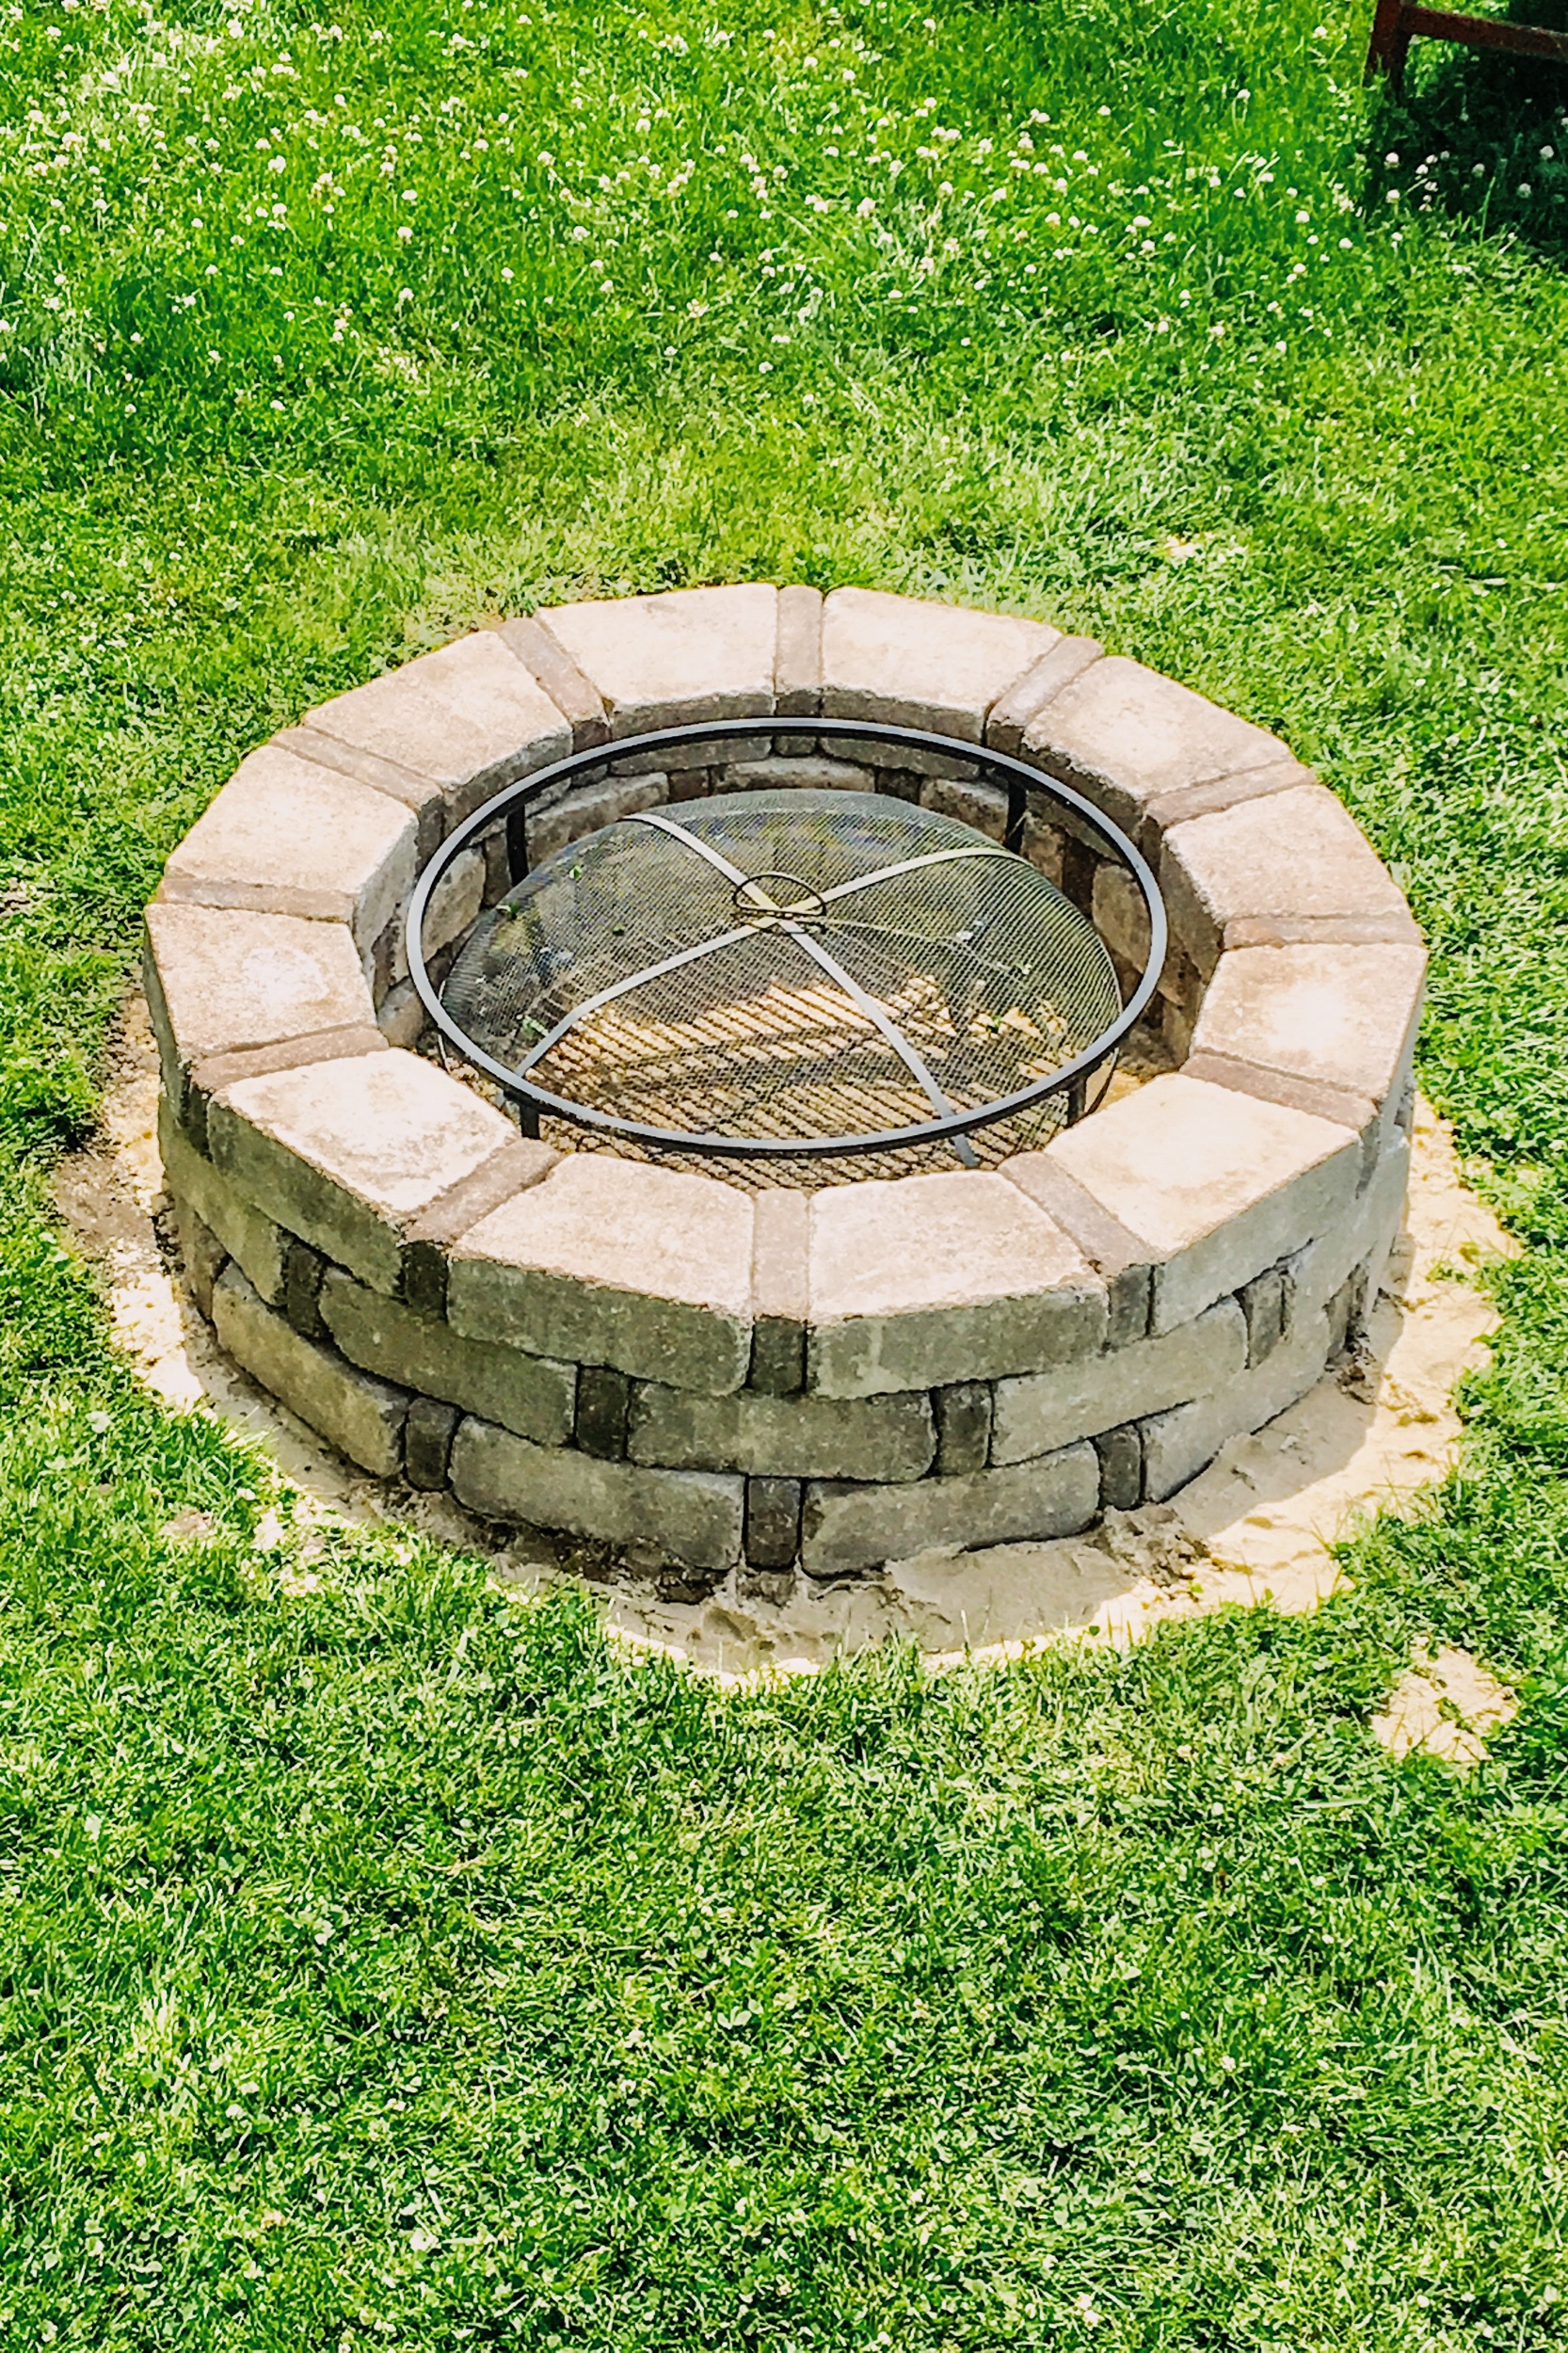 DIY Outdoor Fire Pit made from stone. How to make your own lake house fire pit for your backyard. How to build your own fire pit. How to build a fire pit for your yard. Fire pit ideas. Lake house fire pit. #DIY #firepit